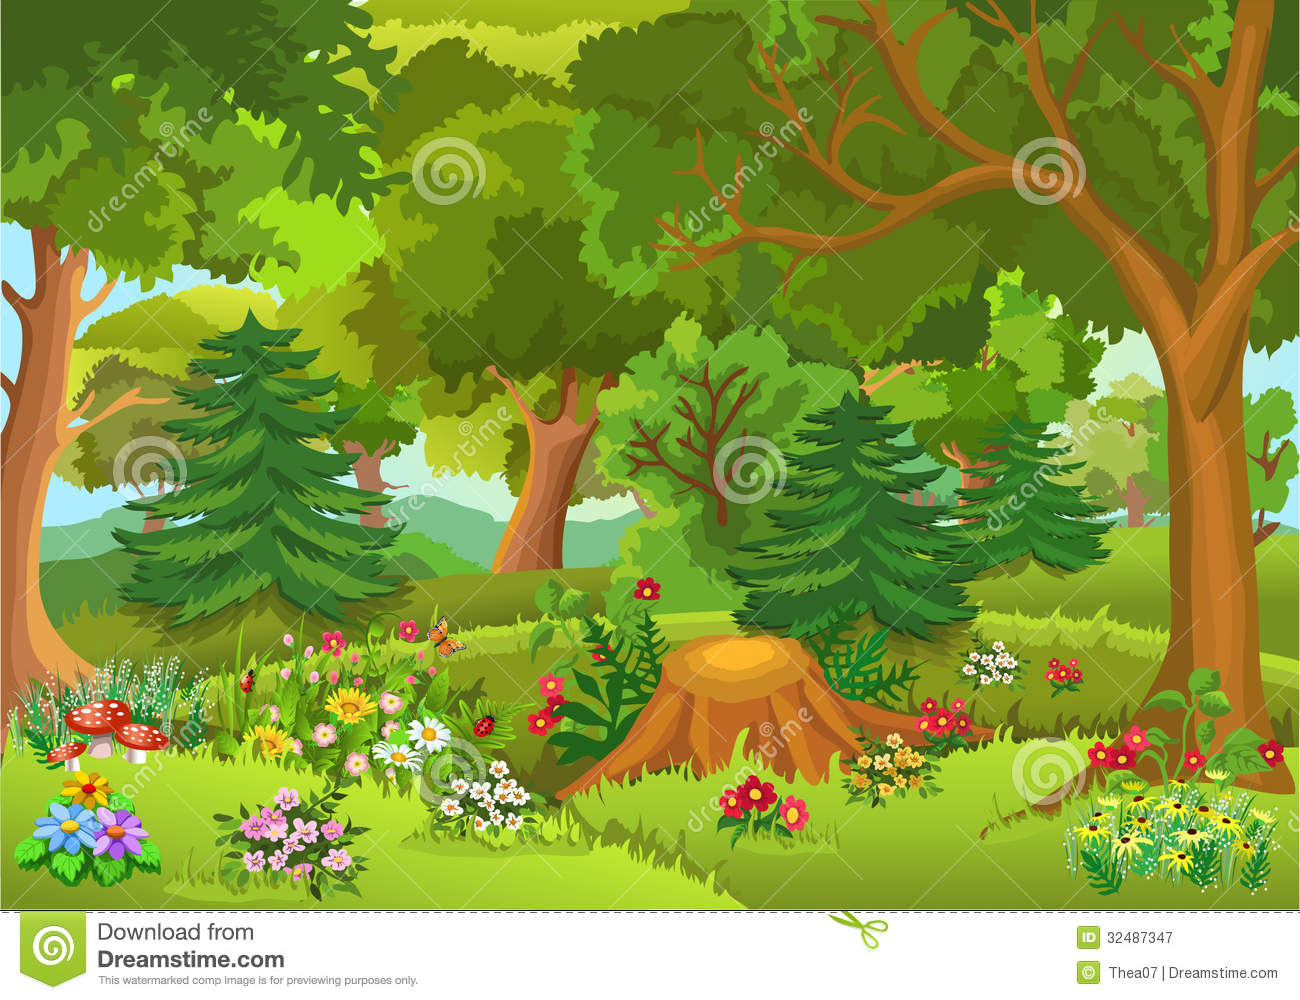 Forest clipart free png black and white download Forest Clipart Free | Clipart Panda - Free Clipart Images png black and white download